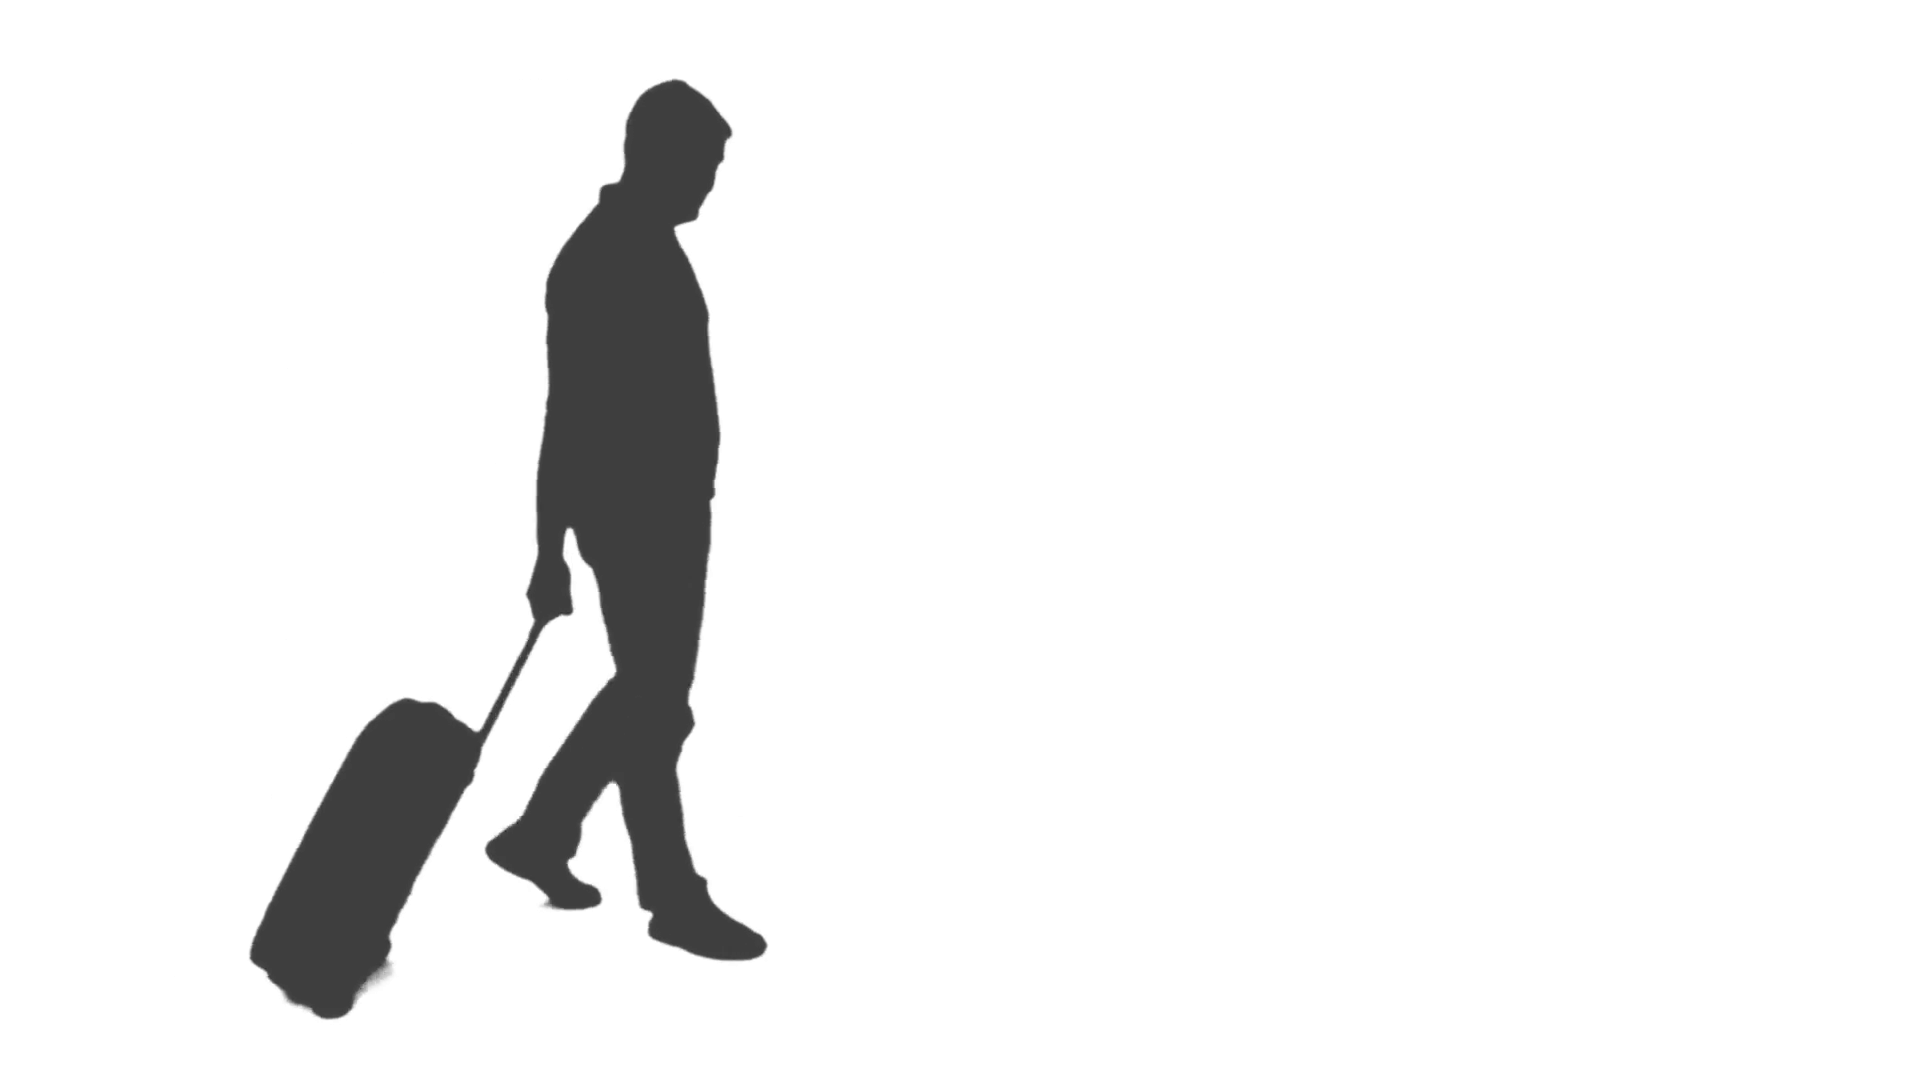 1920x1080 Male Silhouette Crouched Sneaking Loop Walk. A Silhouette Man